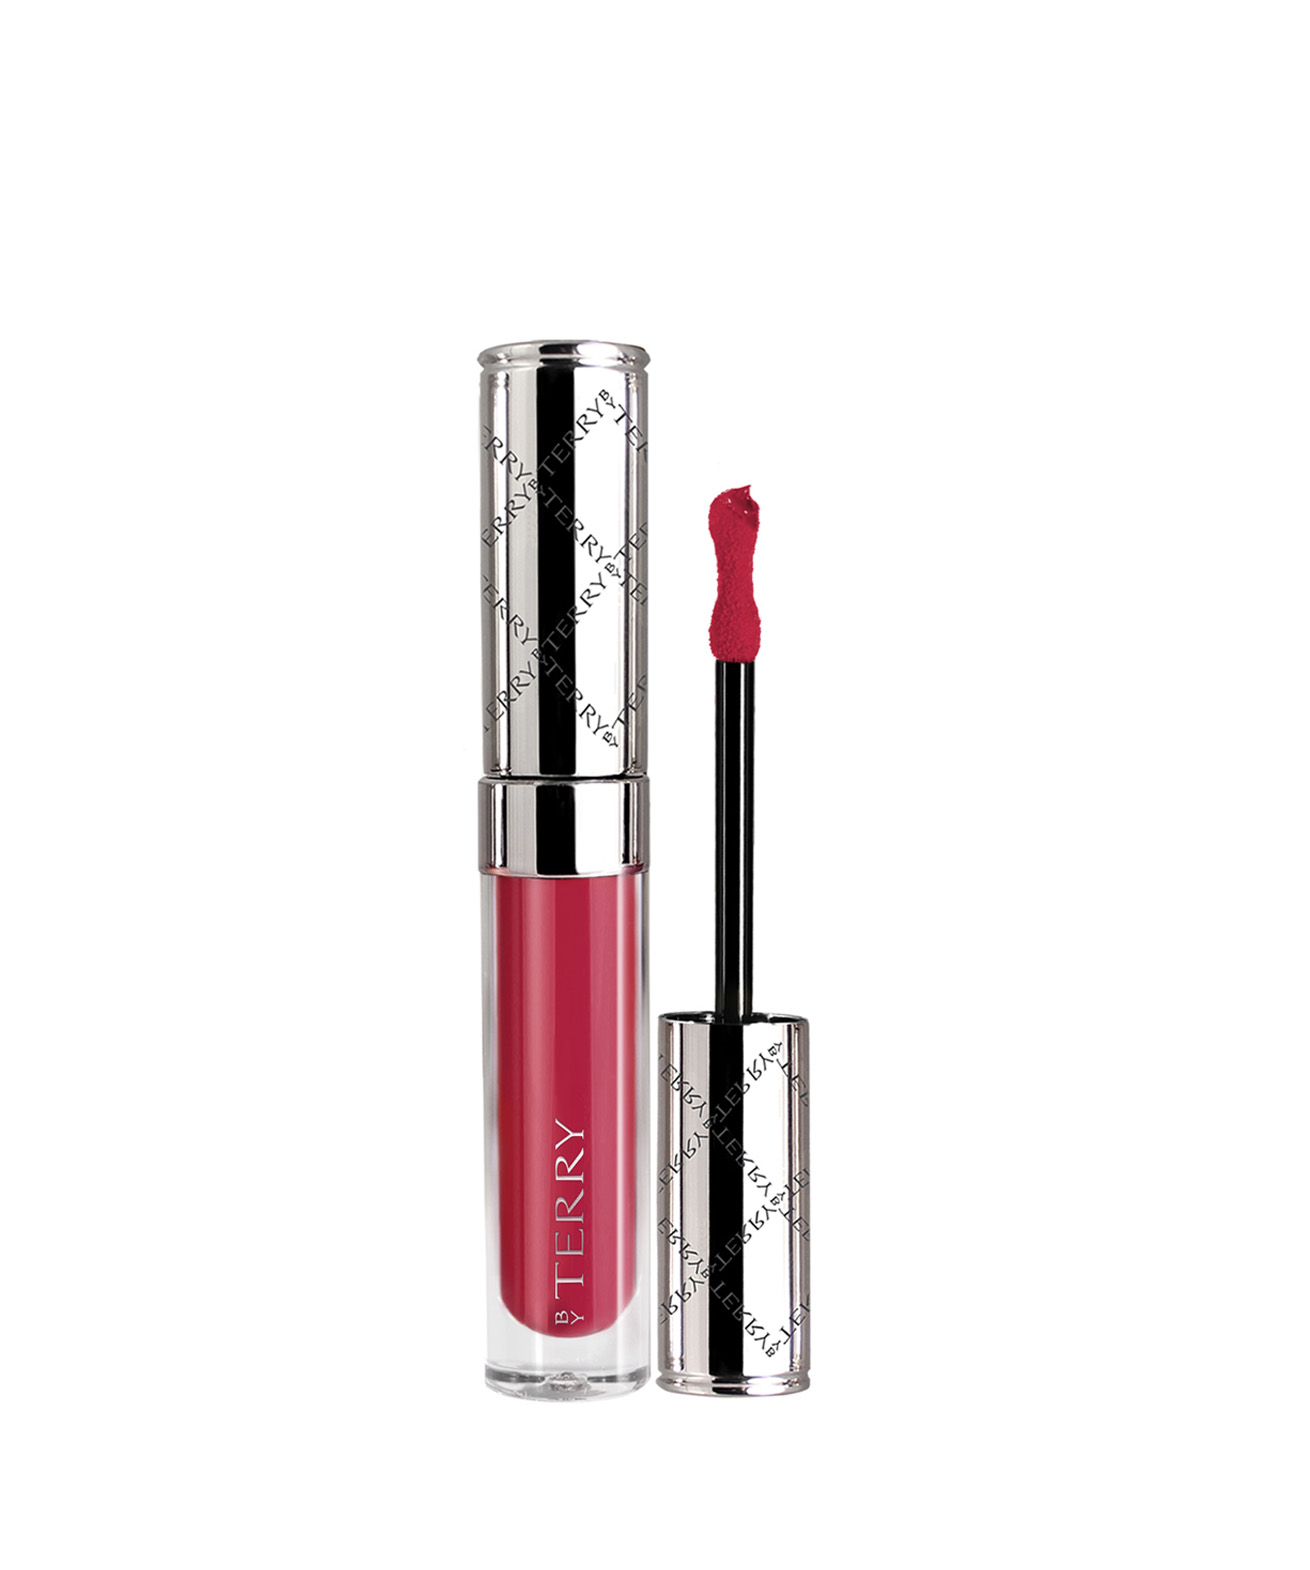 5-Terrybly-Velvet-Rouge-rossetto-liquido-vellutato-Linea-makeup-di-nicchia-By-Terry-Dispar-SpA.jpg